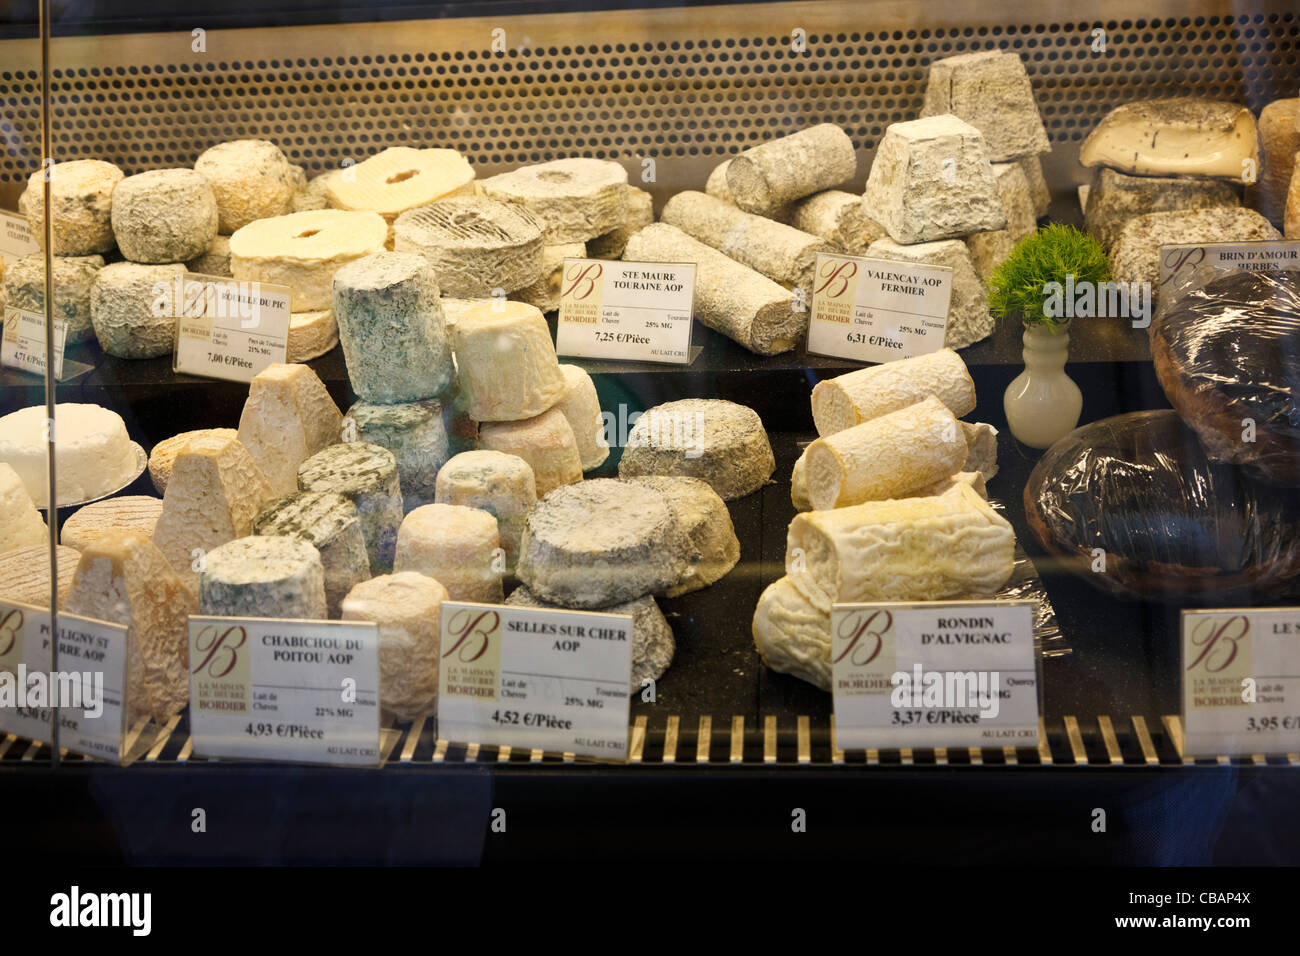 French cheese window display in a shop in France - Stock Image